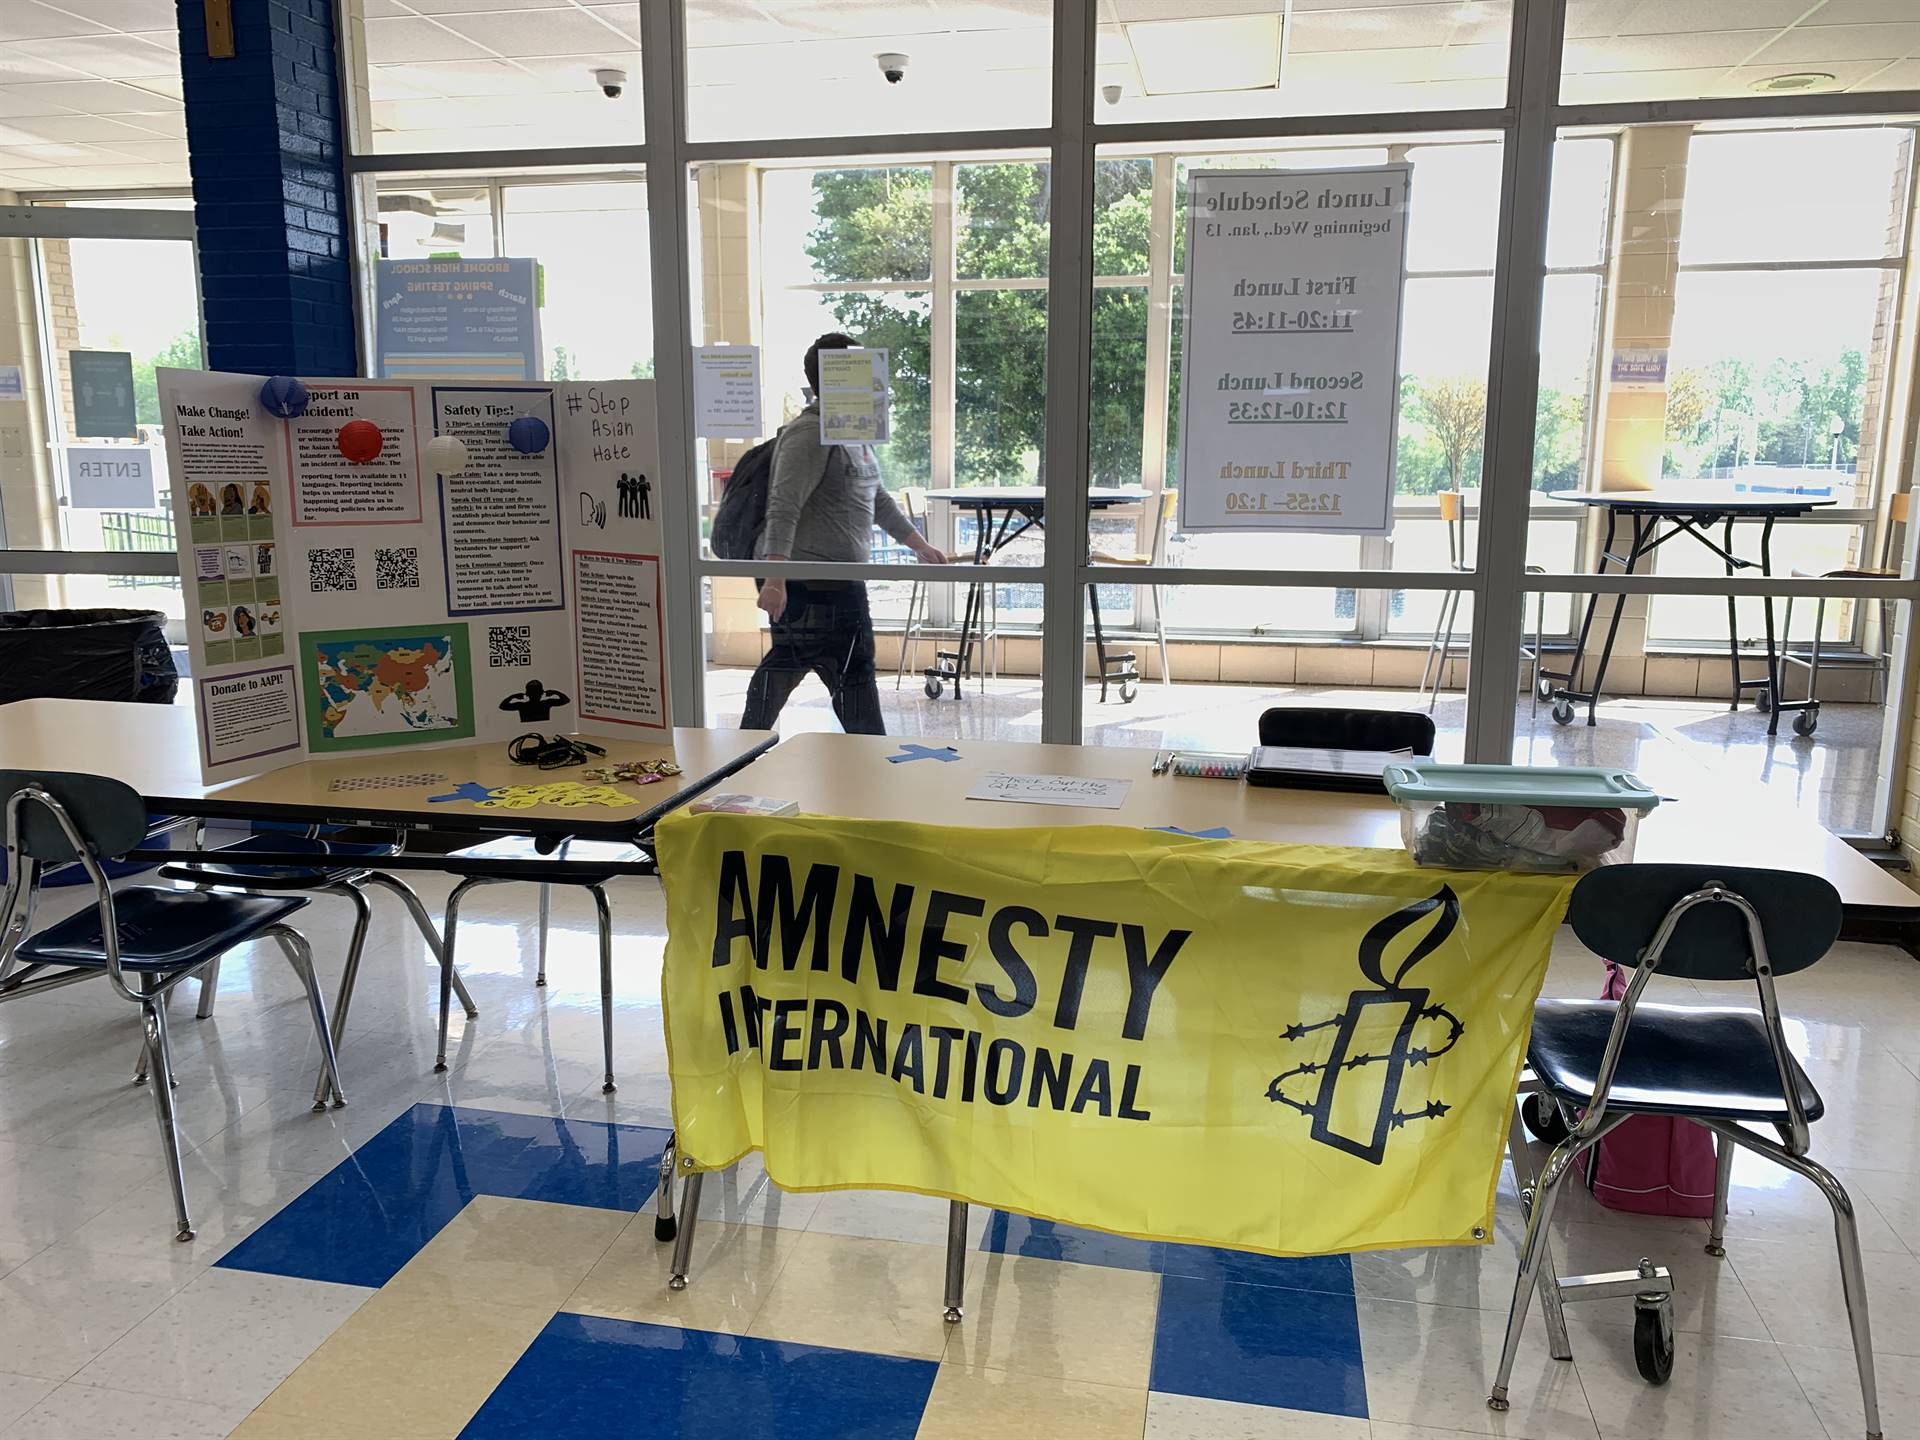 Amnesty International at Broome wants YOU to join.